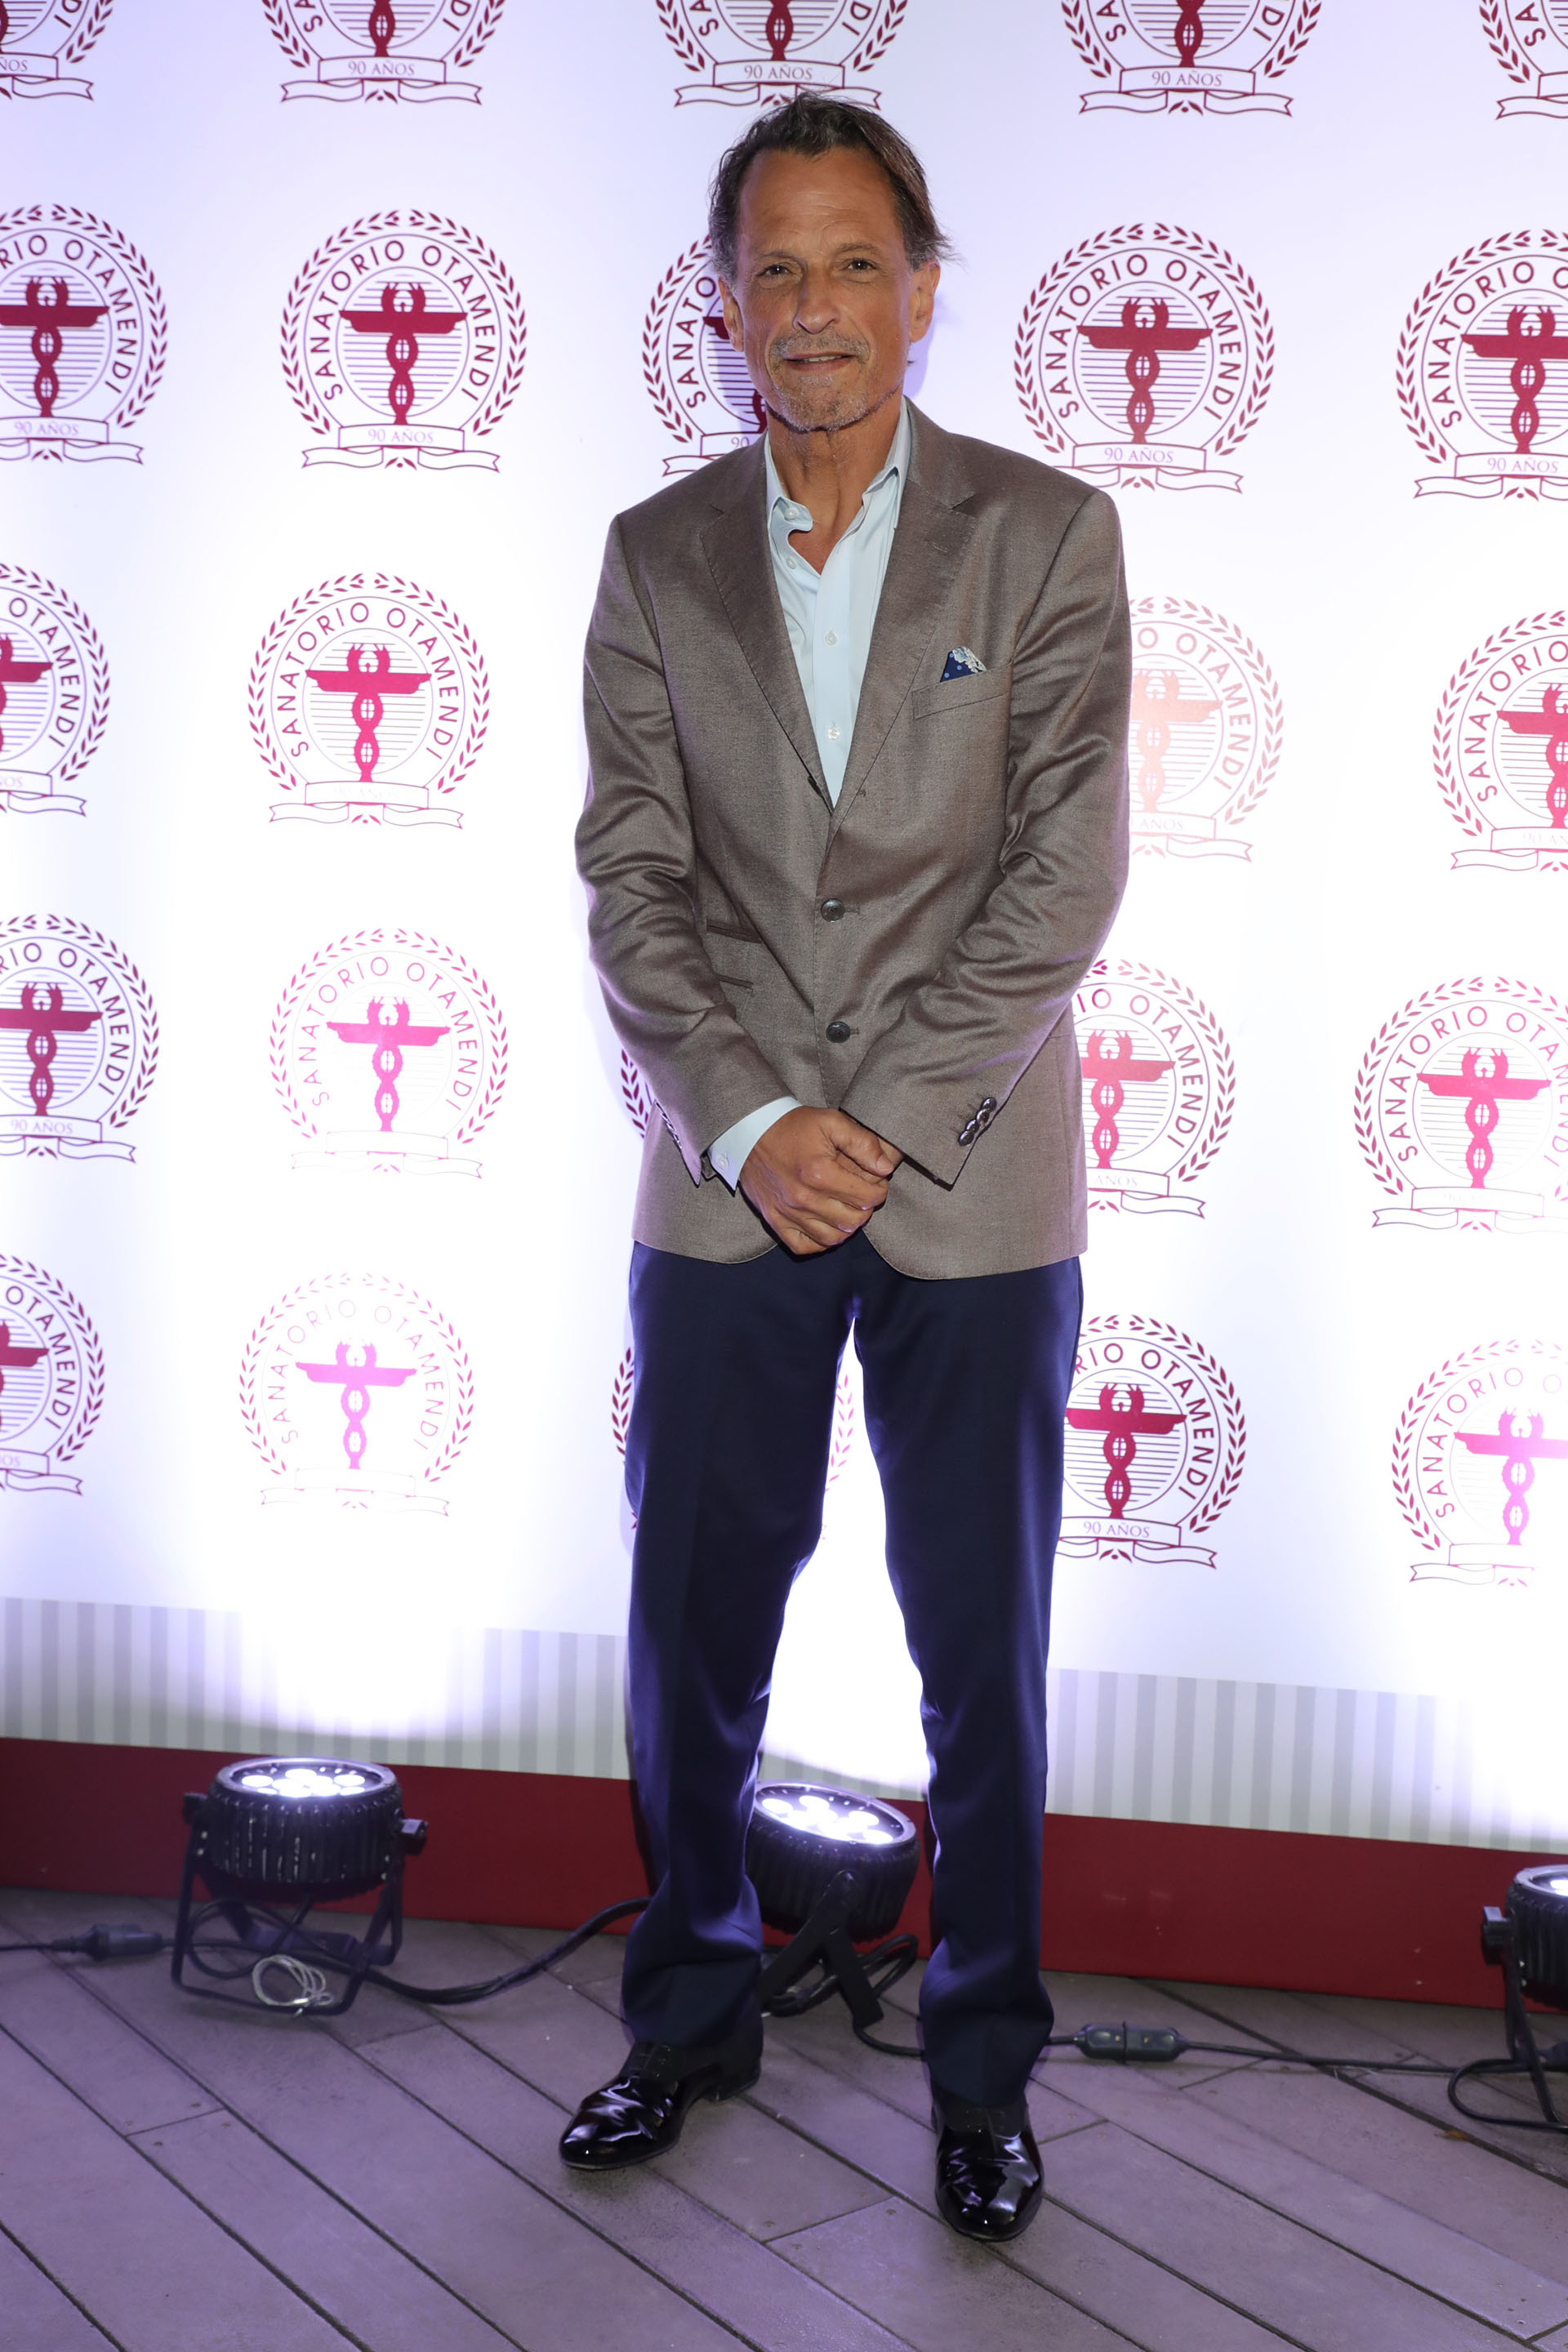 Claudio Belocopitt, presidente de Swiss Medical Group